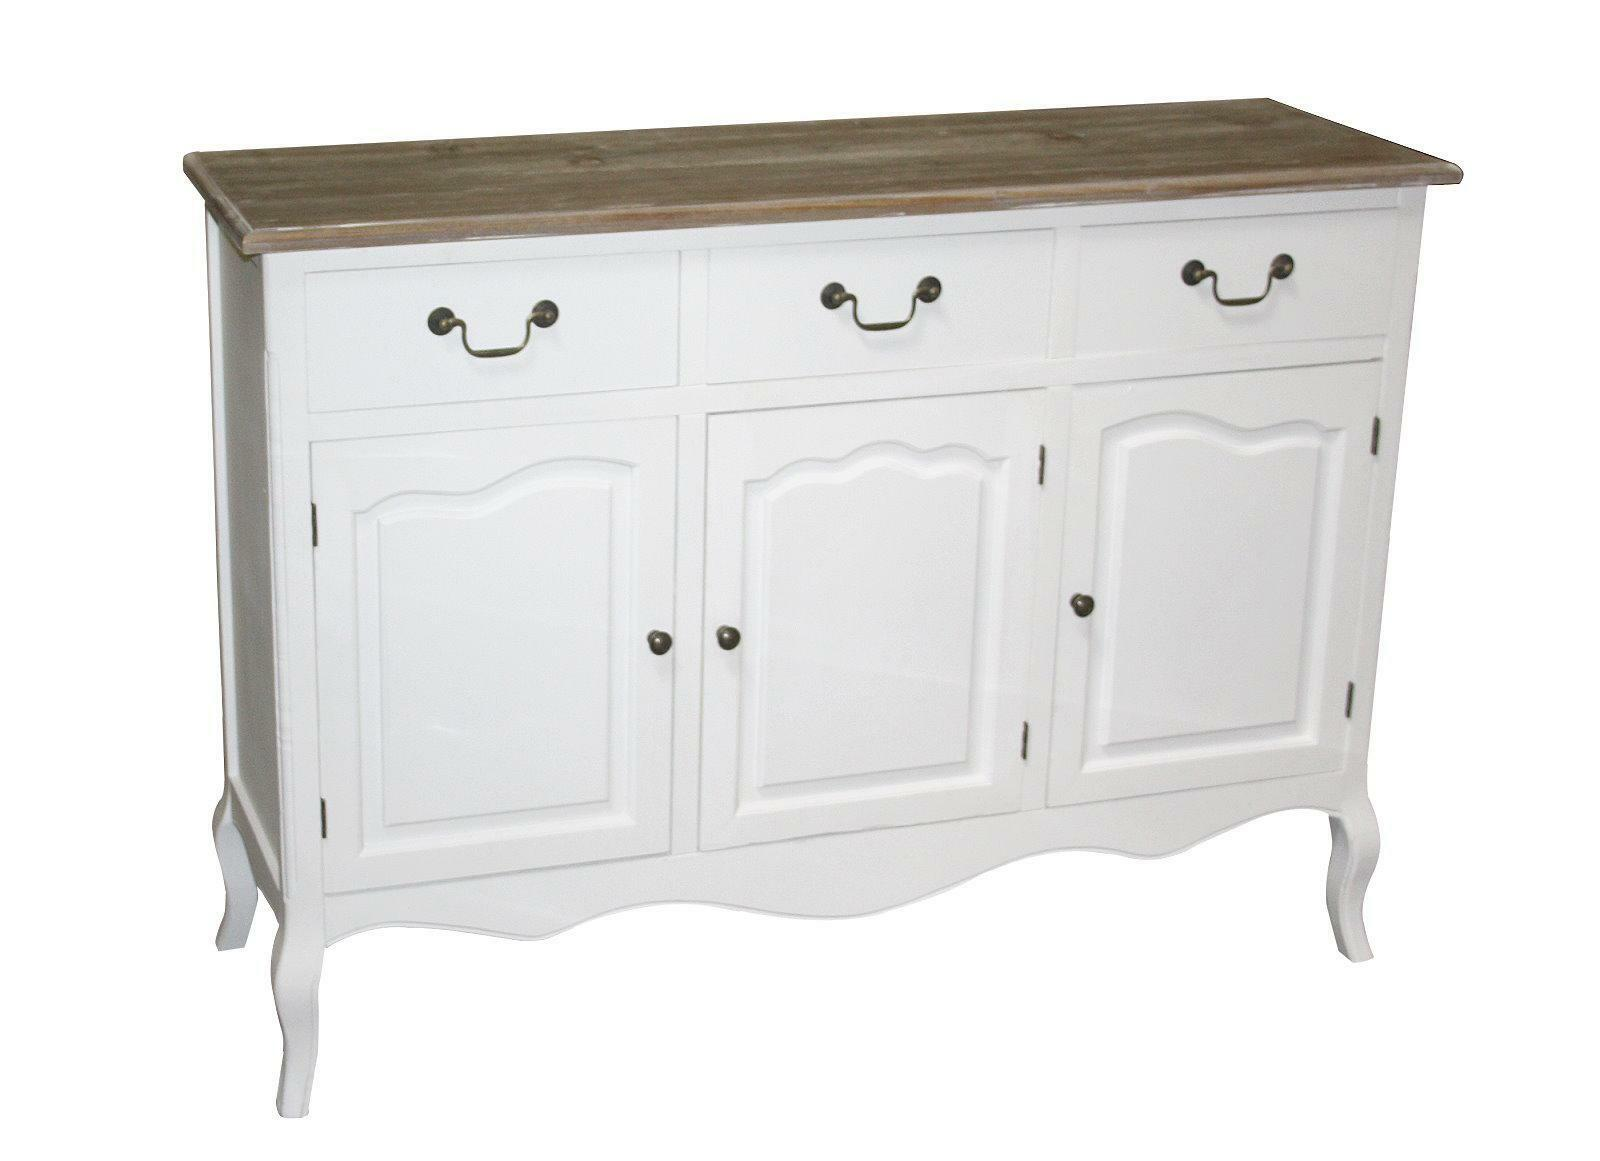 maison belfort kommode mauriac ii shabby look sideboard weiss schrank anrichte eur 199 00. Black Bedroom Furniture Sets. Home Design Ideas